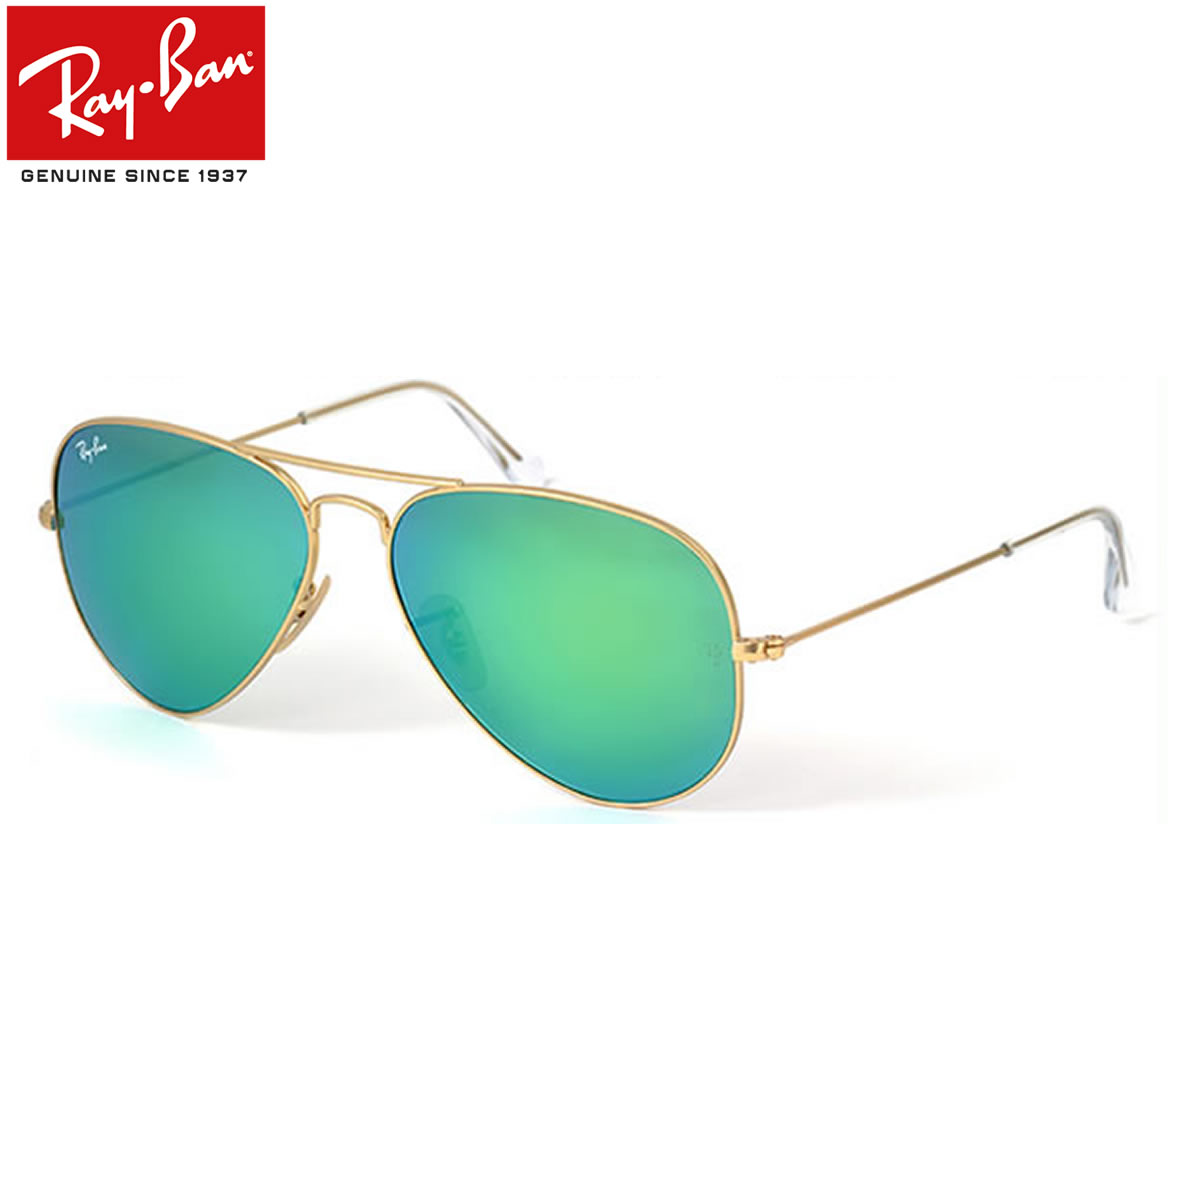 f6d7203347d53 A new style of Ray-Ban titled